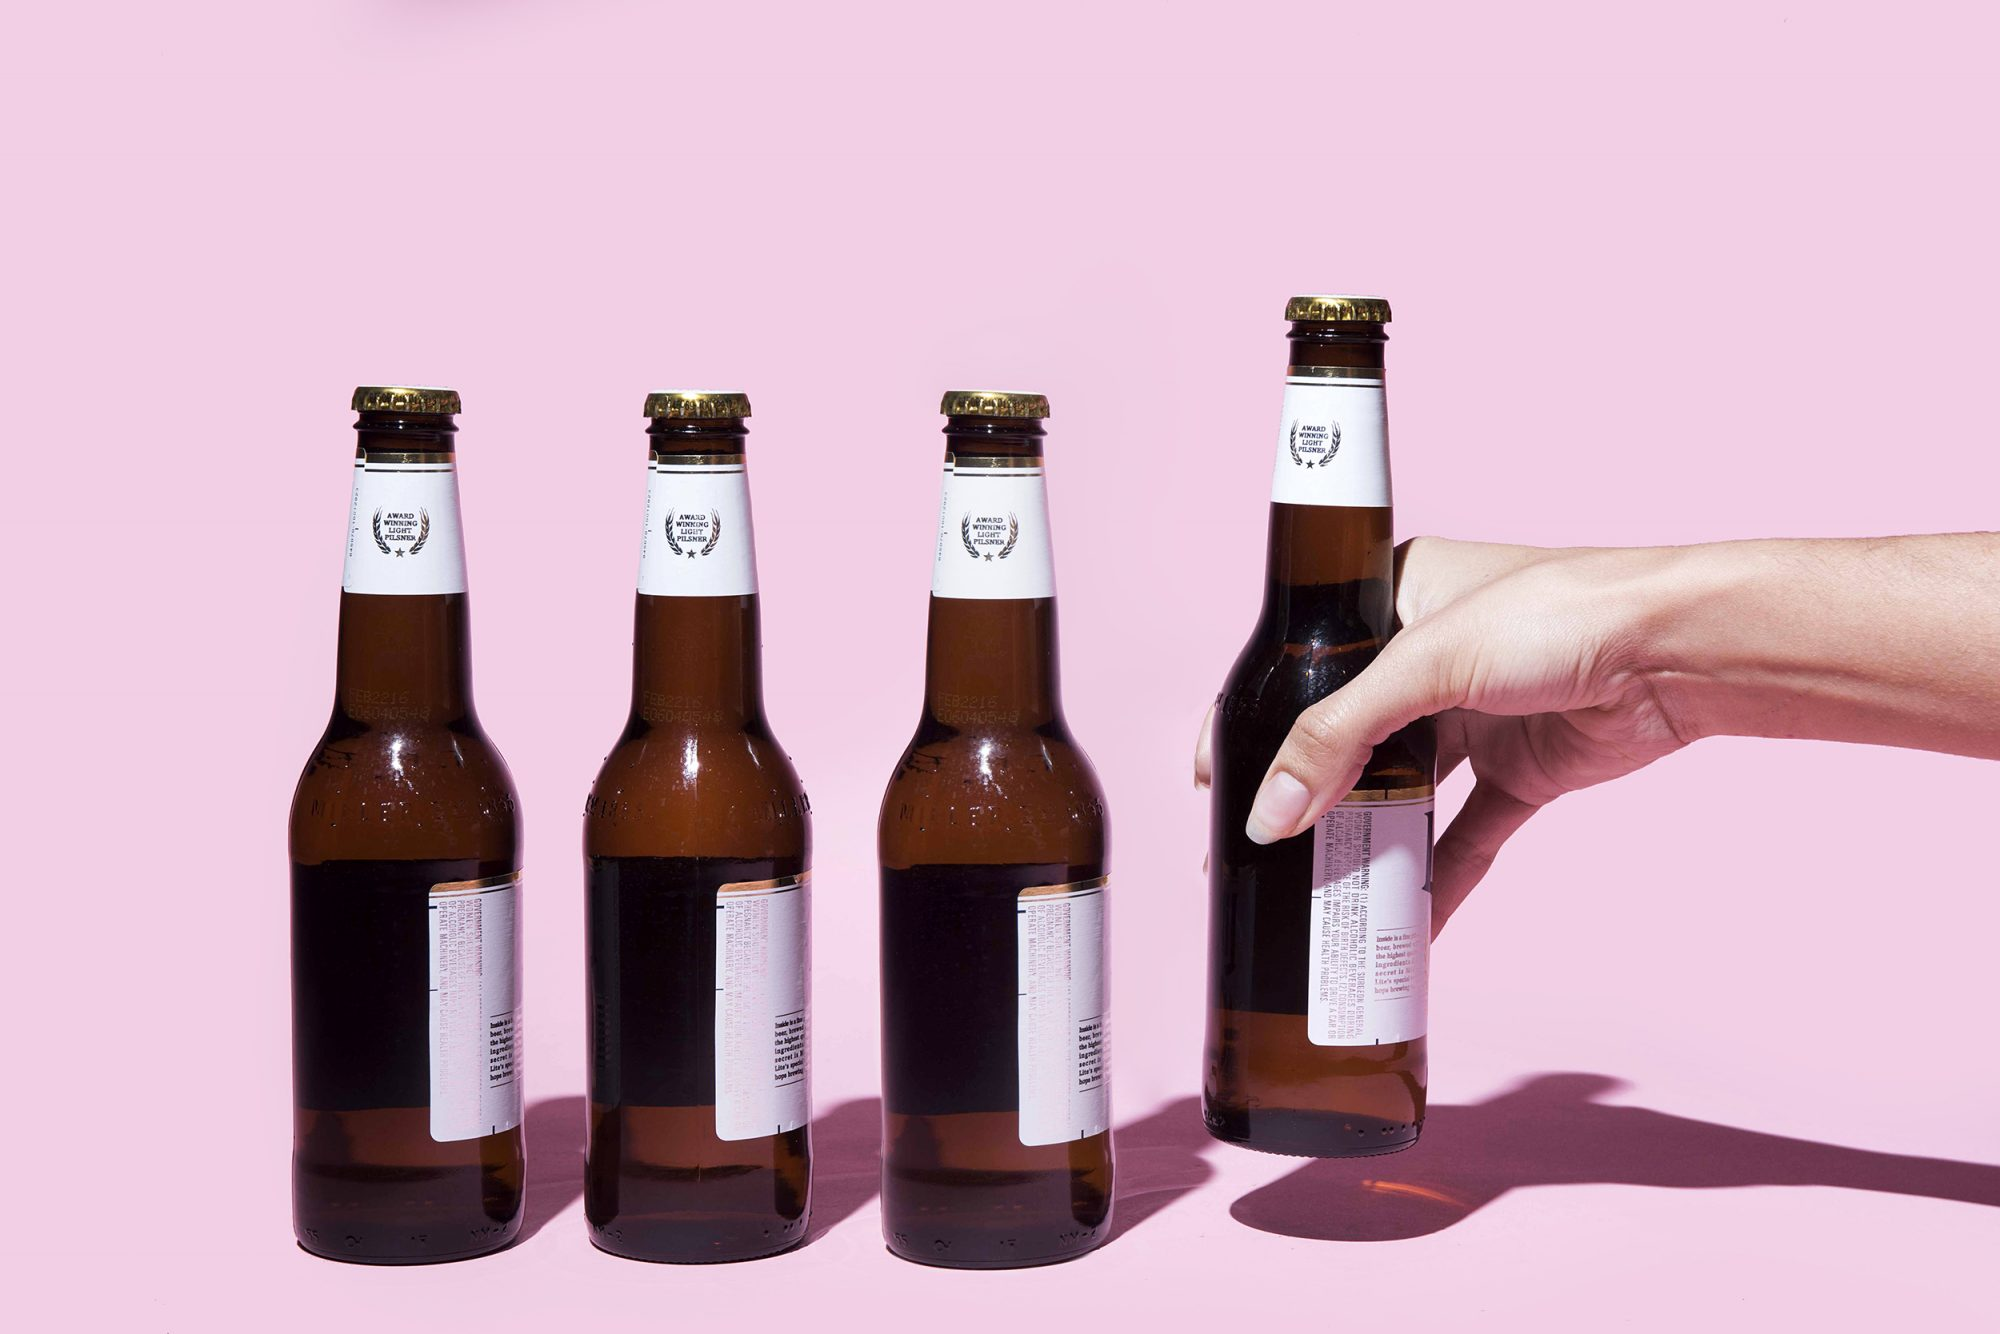 beer-bottles-drinking-health-alcohol-motto-stock